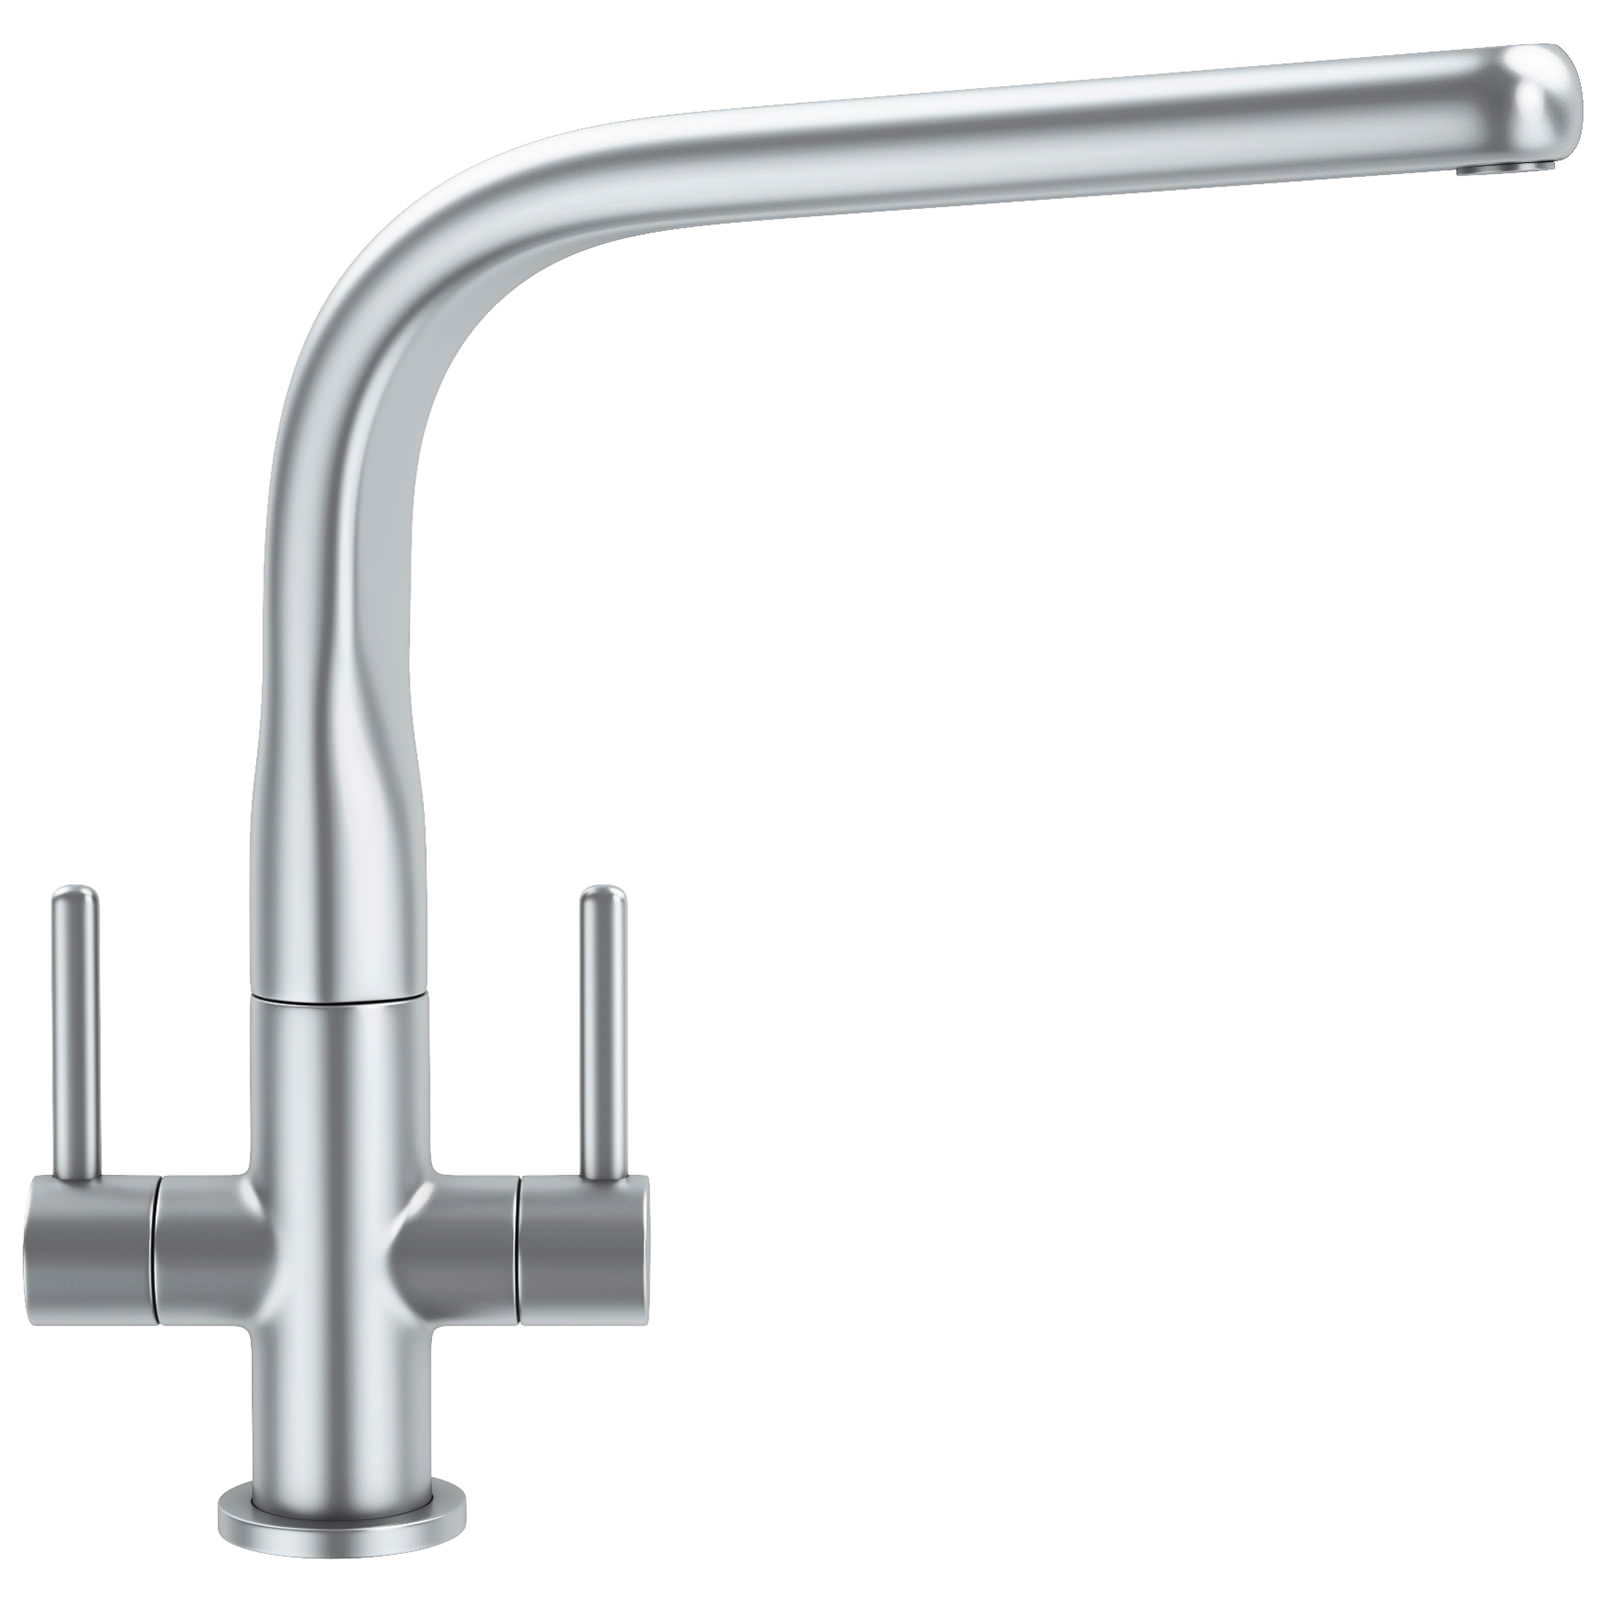 Franke Sinos Kitchen Sink Mixer Tap SilkSteel - 115.0277.028